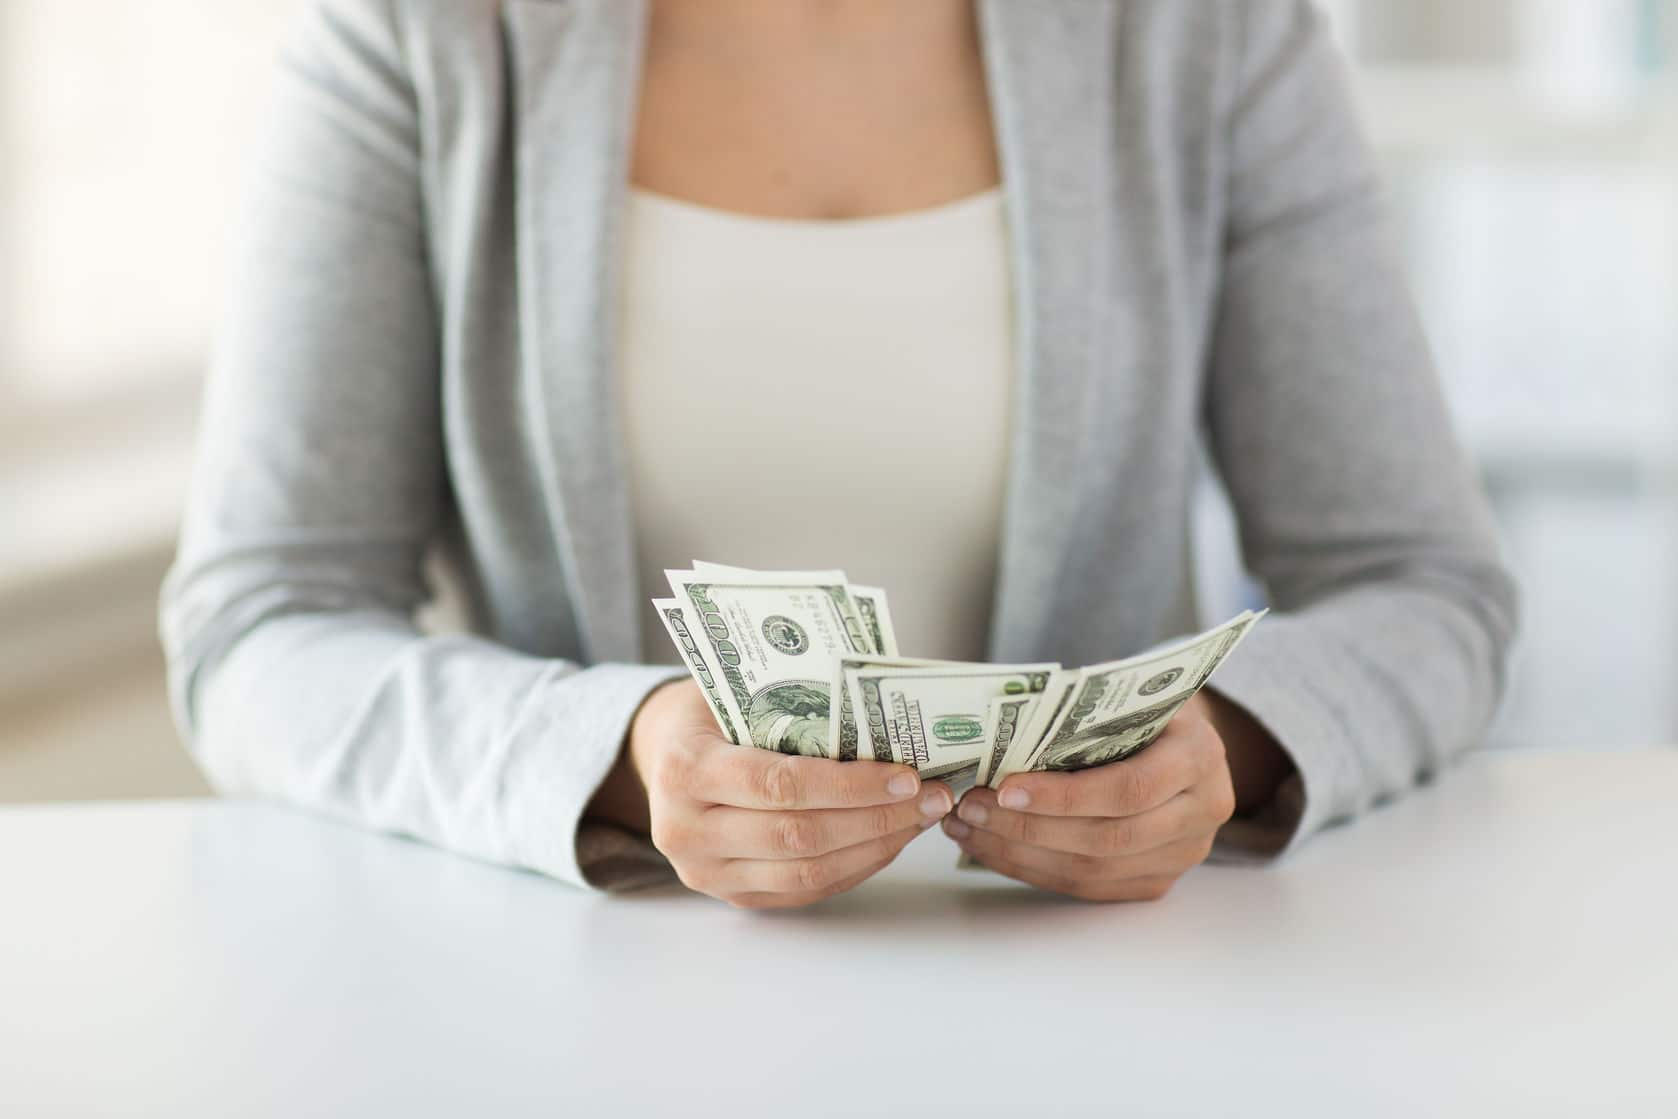 Money problems are far from uncommon. Here are a few helpful tips to solve some of your biggest money problems